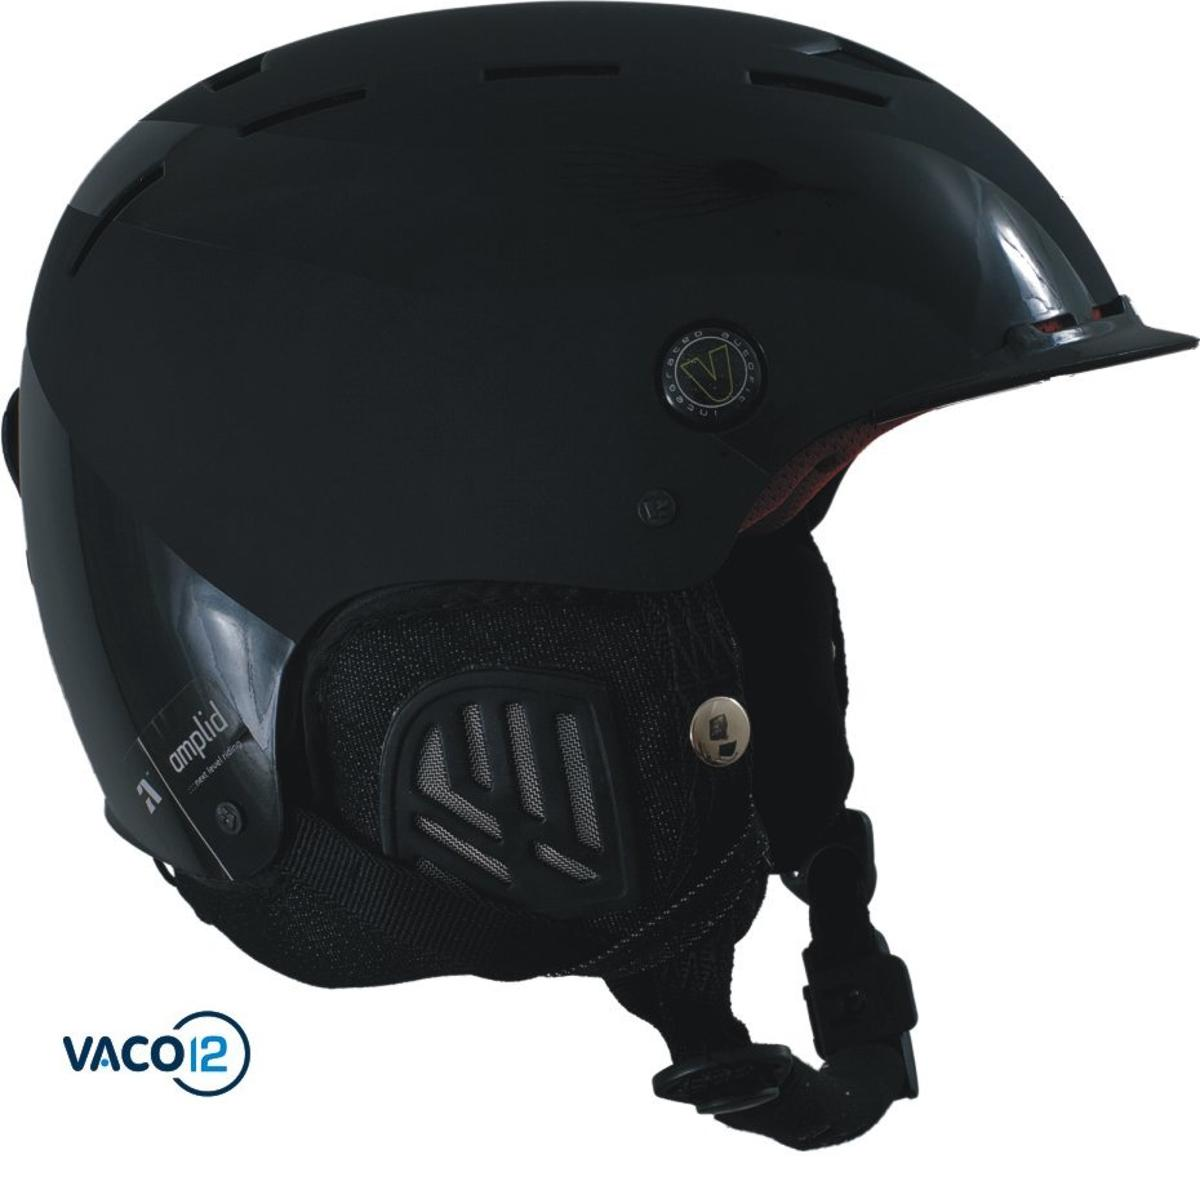 The Amplid Plasma helmet uses Vaco12 technology in its padding